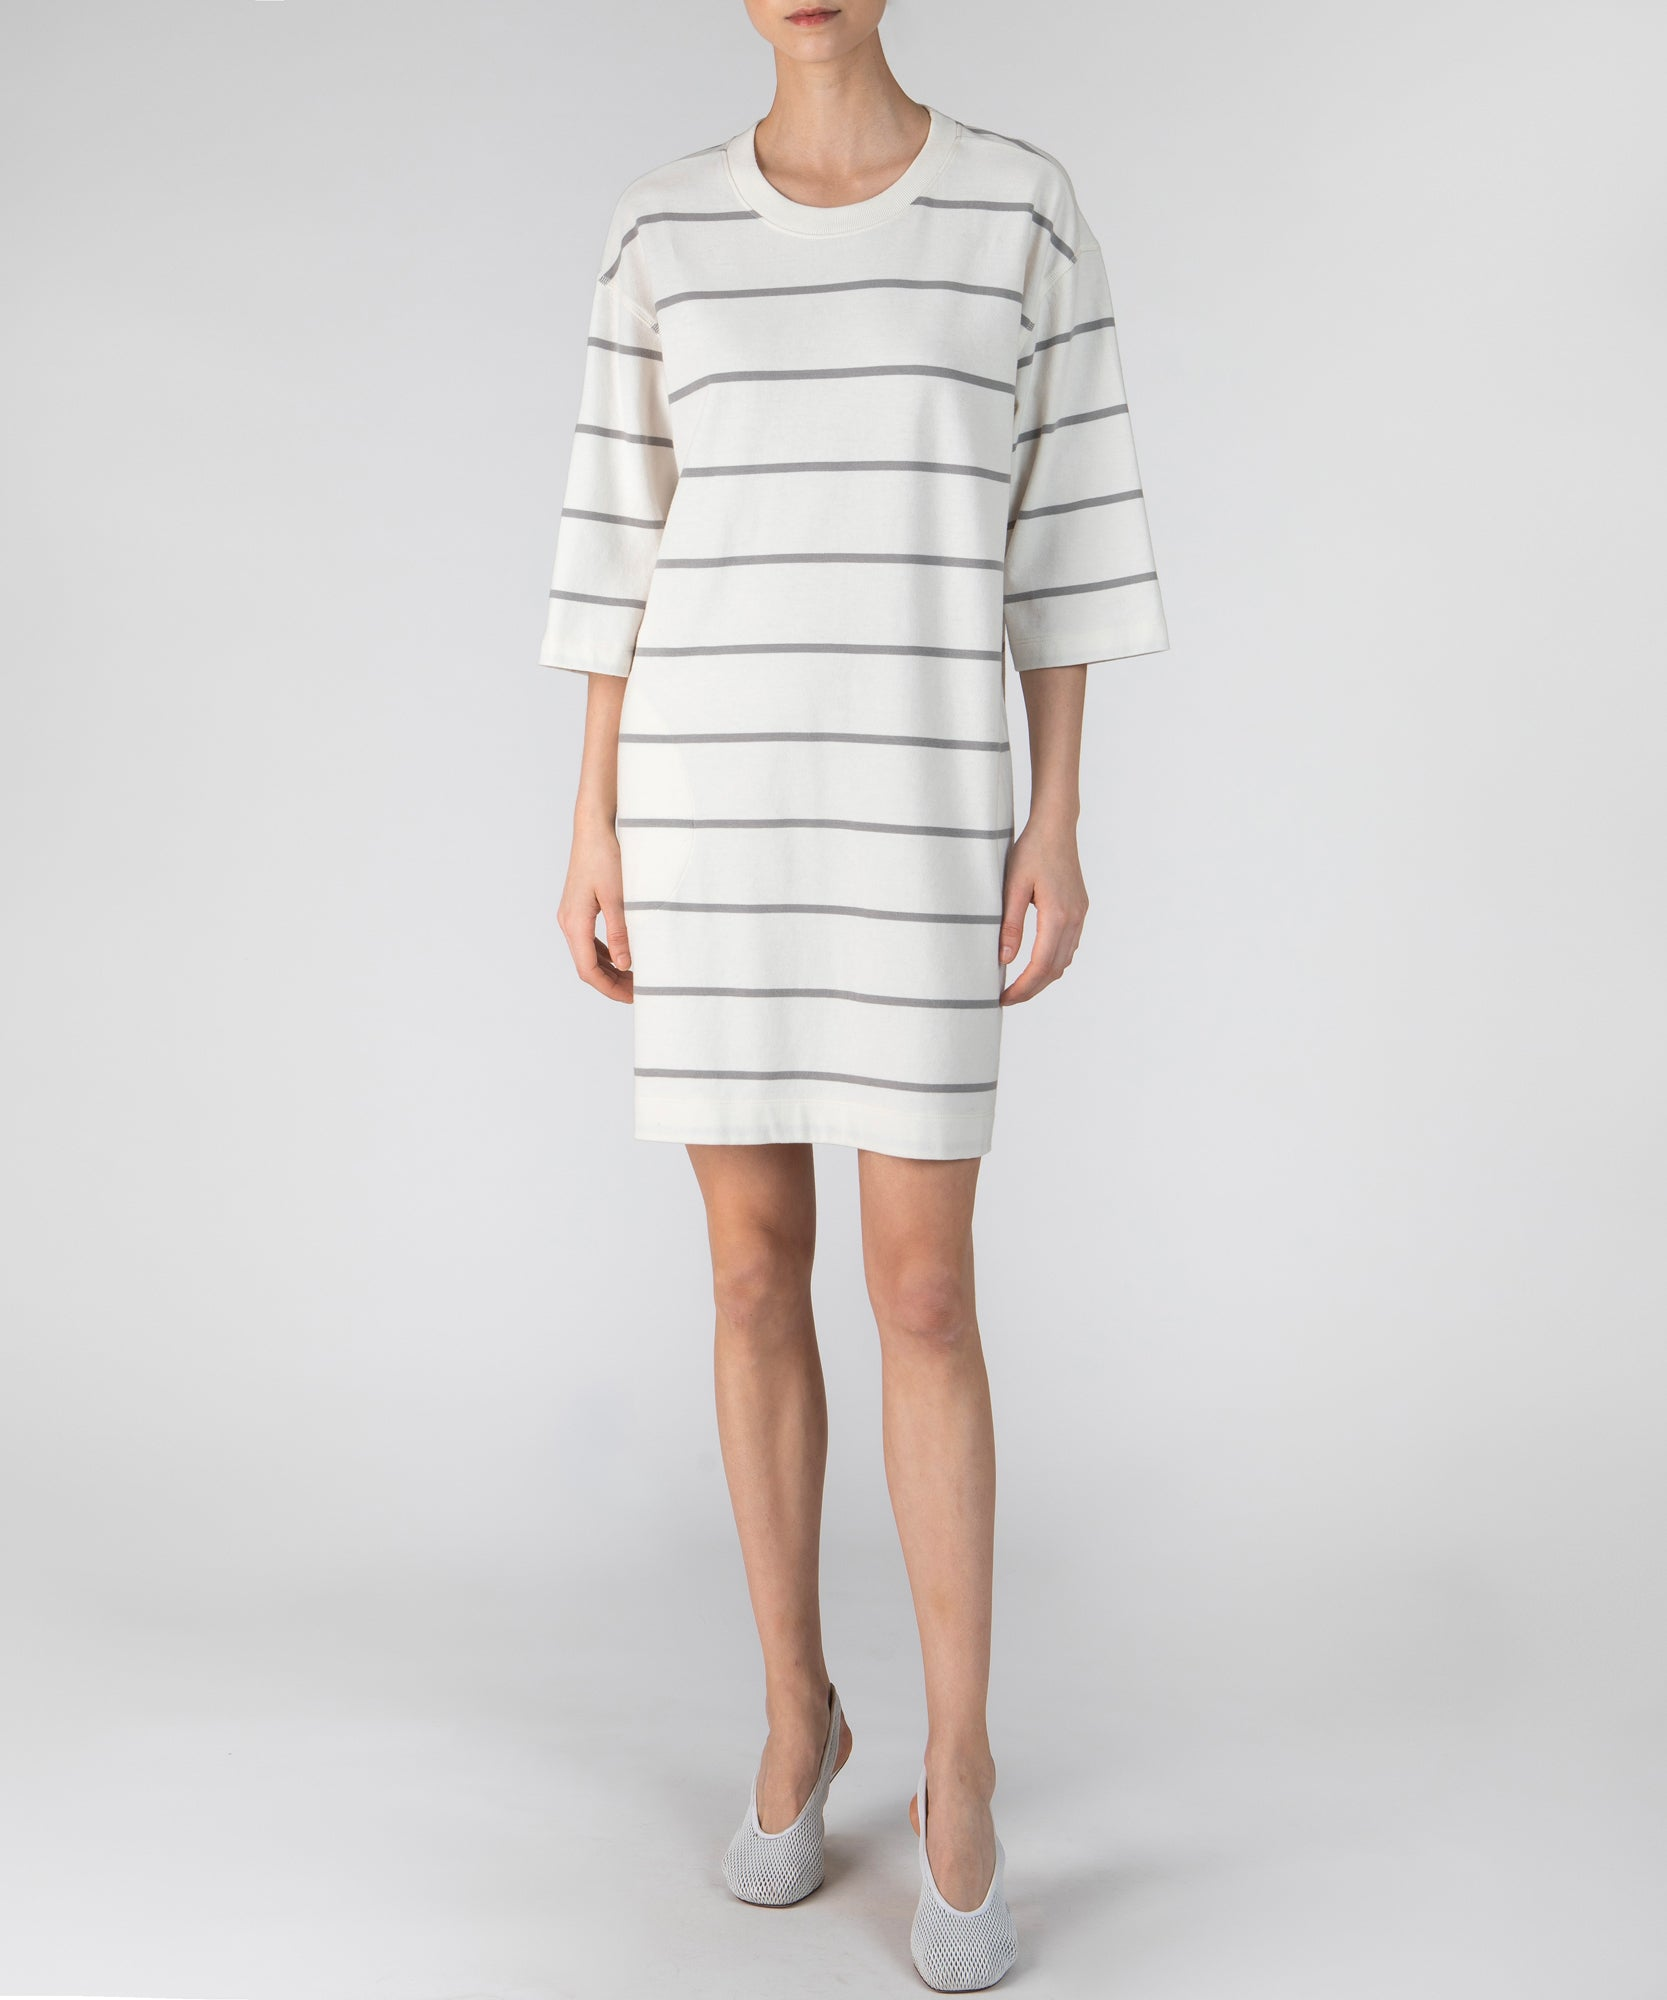 Chalk and Smoke Striped Plaited Jersey Dress - Women's Casual Dress by ATM Anthony Thomas Melillo